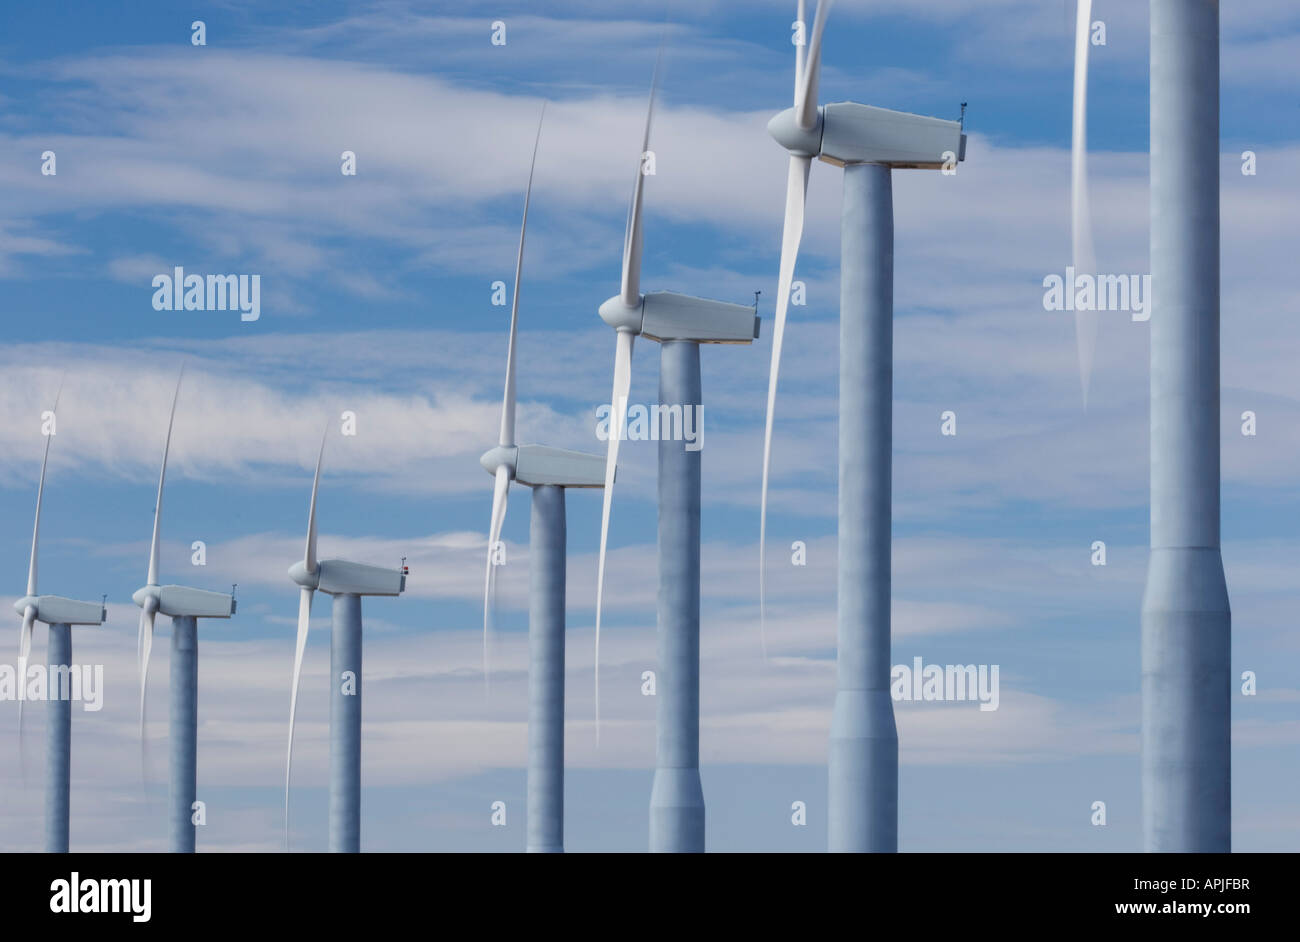 Propellers of windturbines spin against a sky of broken clouds - Stock Image